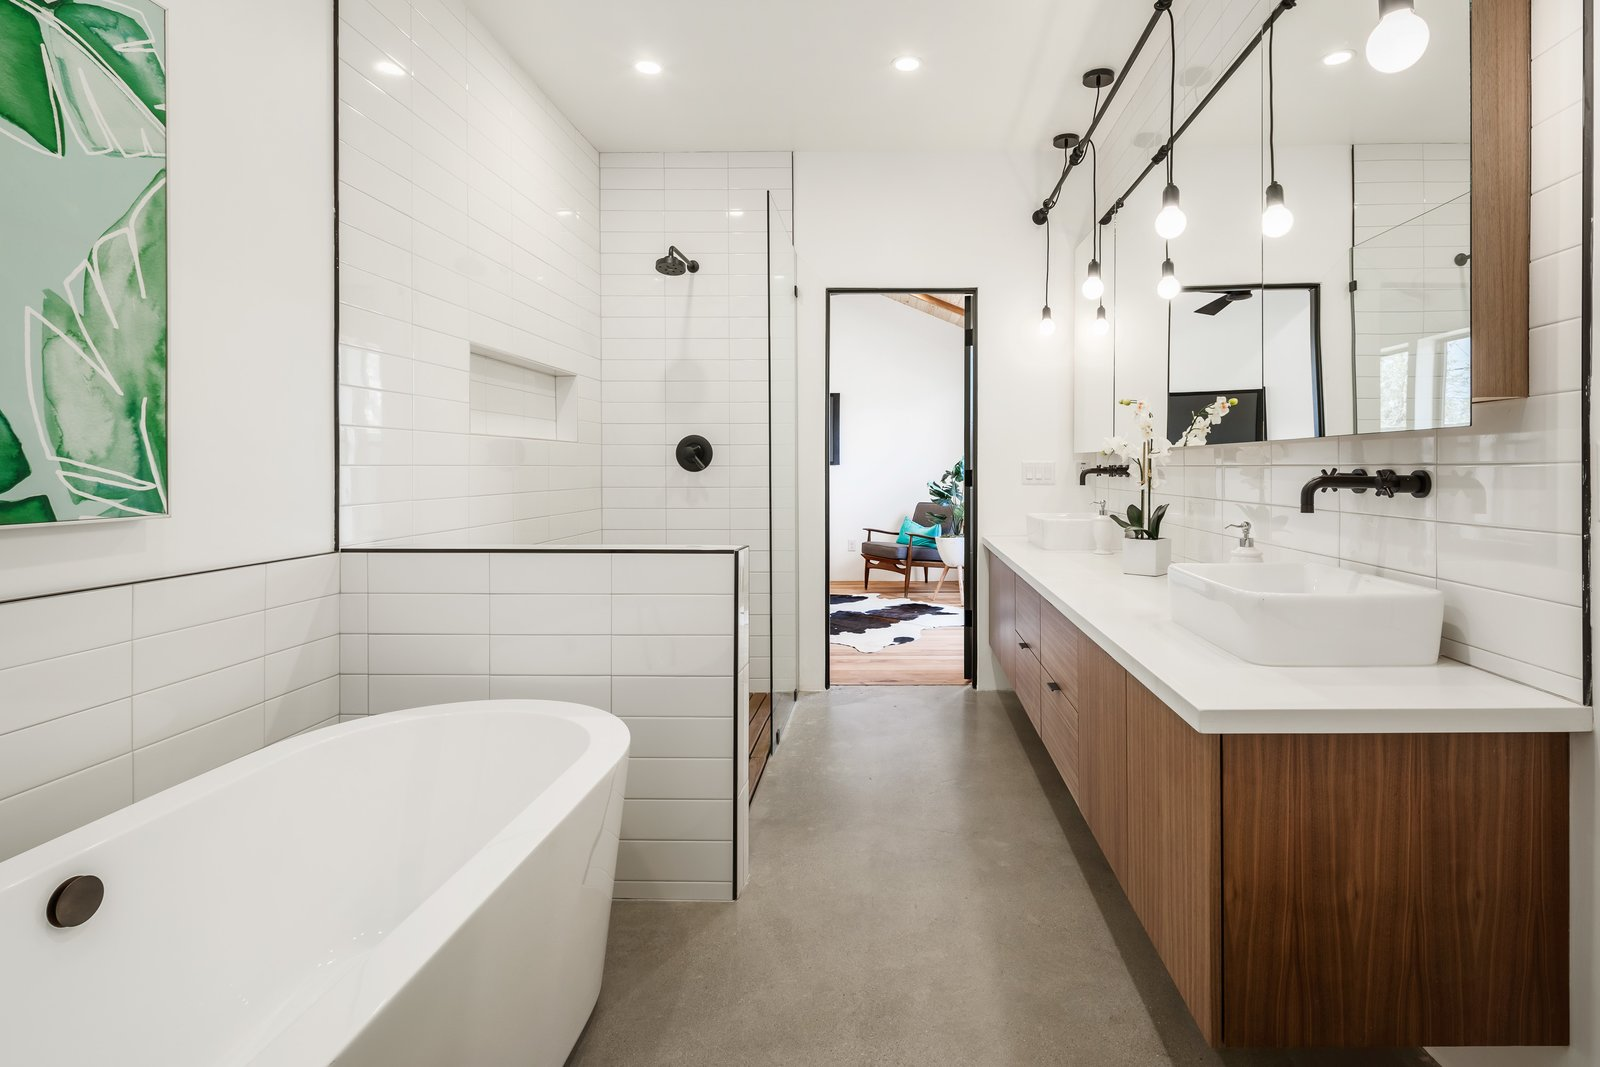 Bath Room, Subway Tile Wall, Enclosed Shower, Engineered Quartz Counter, Vessel Sink, Pendant Lighting, Concrete Floor, Freestanding Tub, Ceiling Lighting, and Recessed Lighting  Photo 9 of 13 in In Arizona, a Modern Cube and Tumbledown 1930s Shack Make an Unlikely Couple